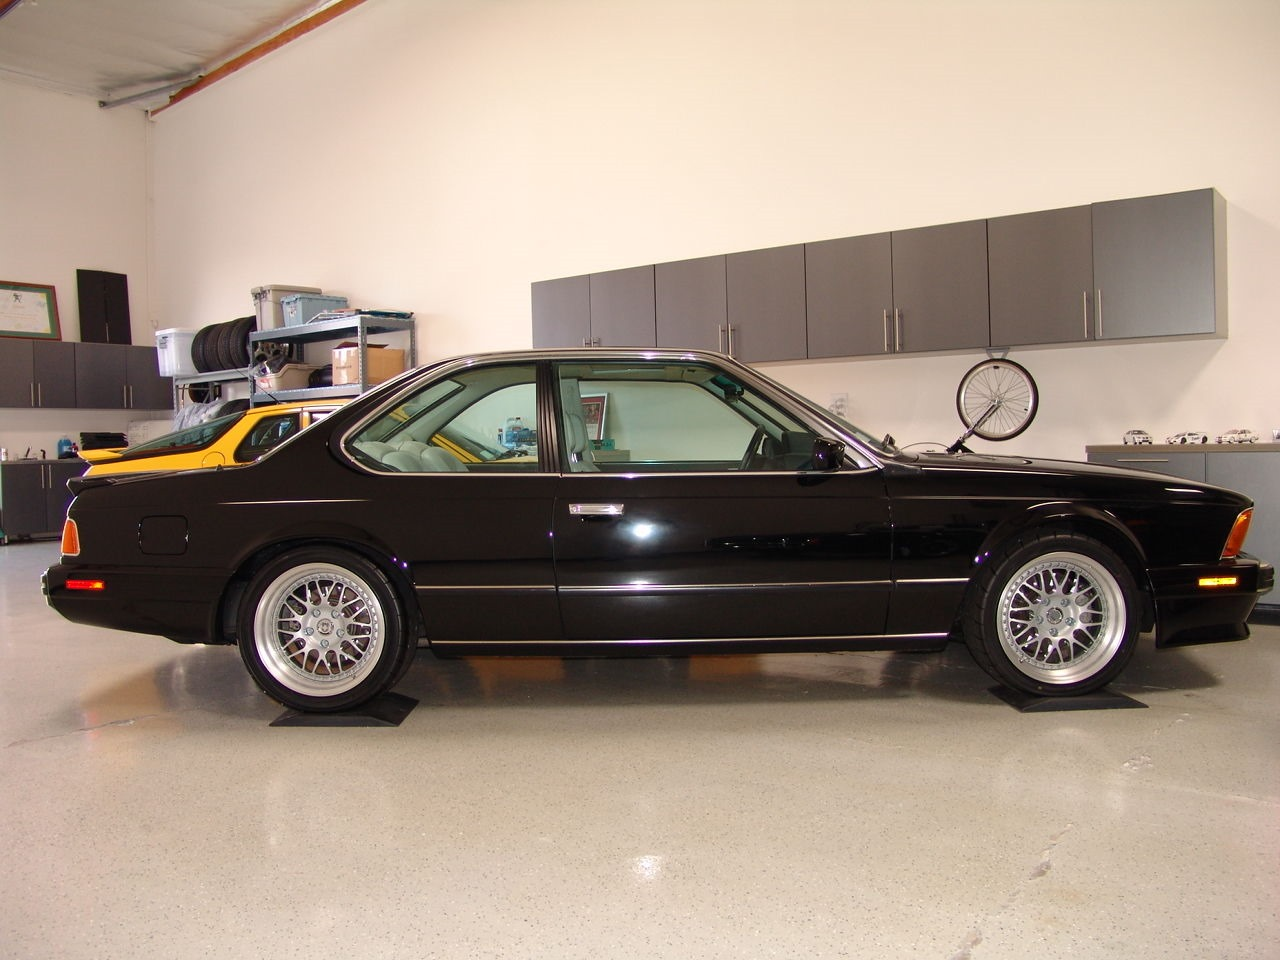 Groovy 1988 Bmw E24 M6 For Sale Priced At Usd158 800 Autoevolution Wiring Digital Resources Minagakbiperorg